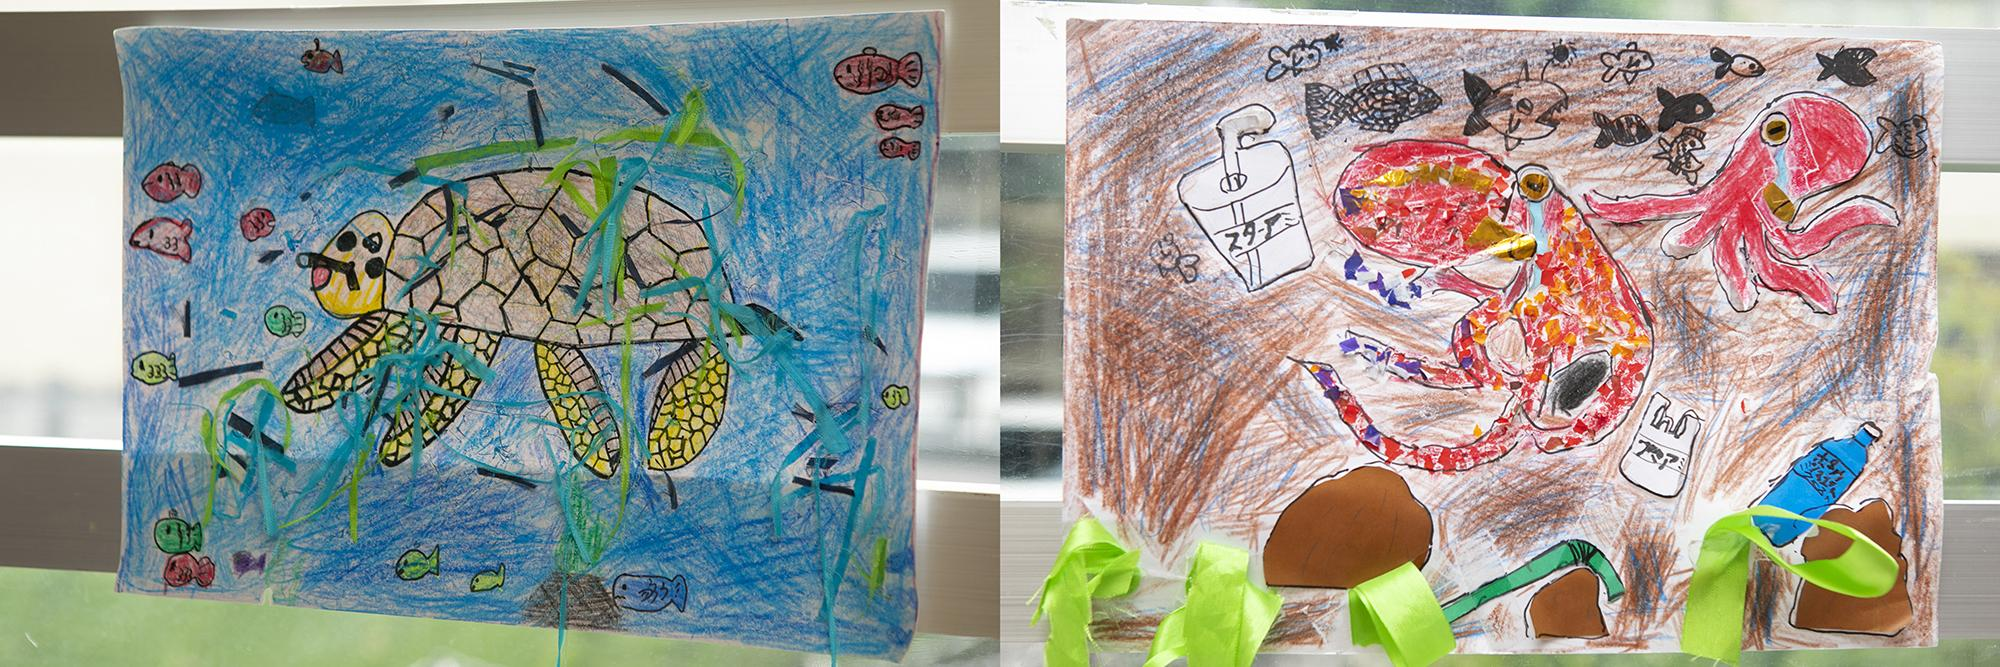 photo: Pictures drawn by the children that were used in the video